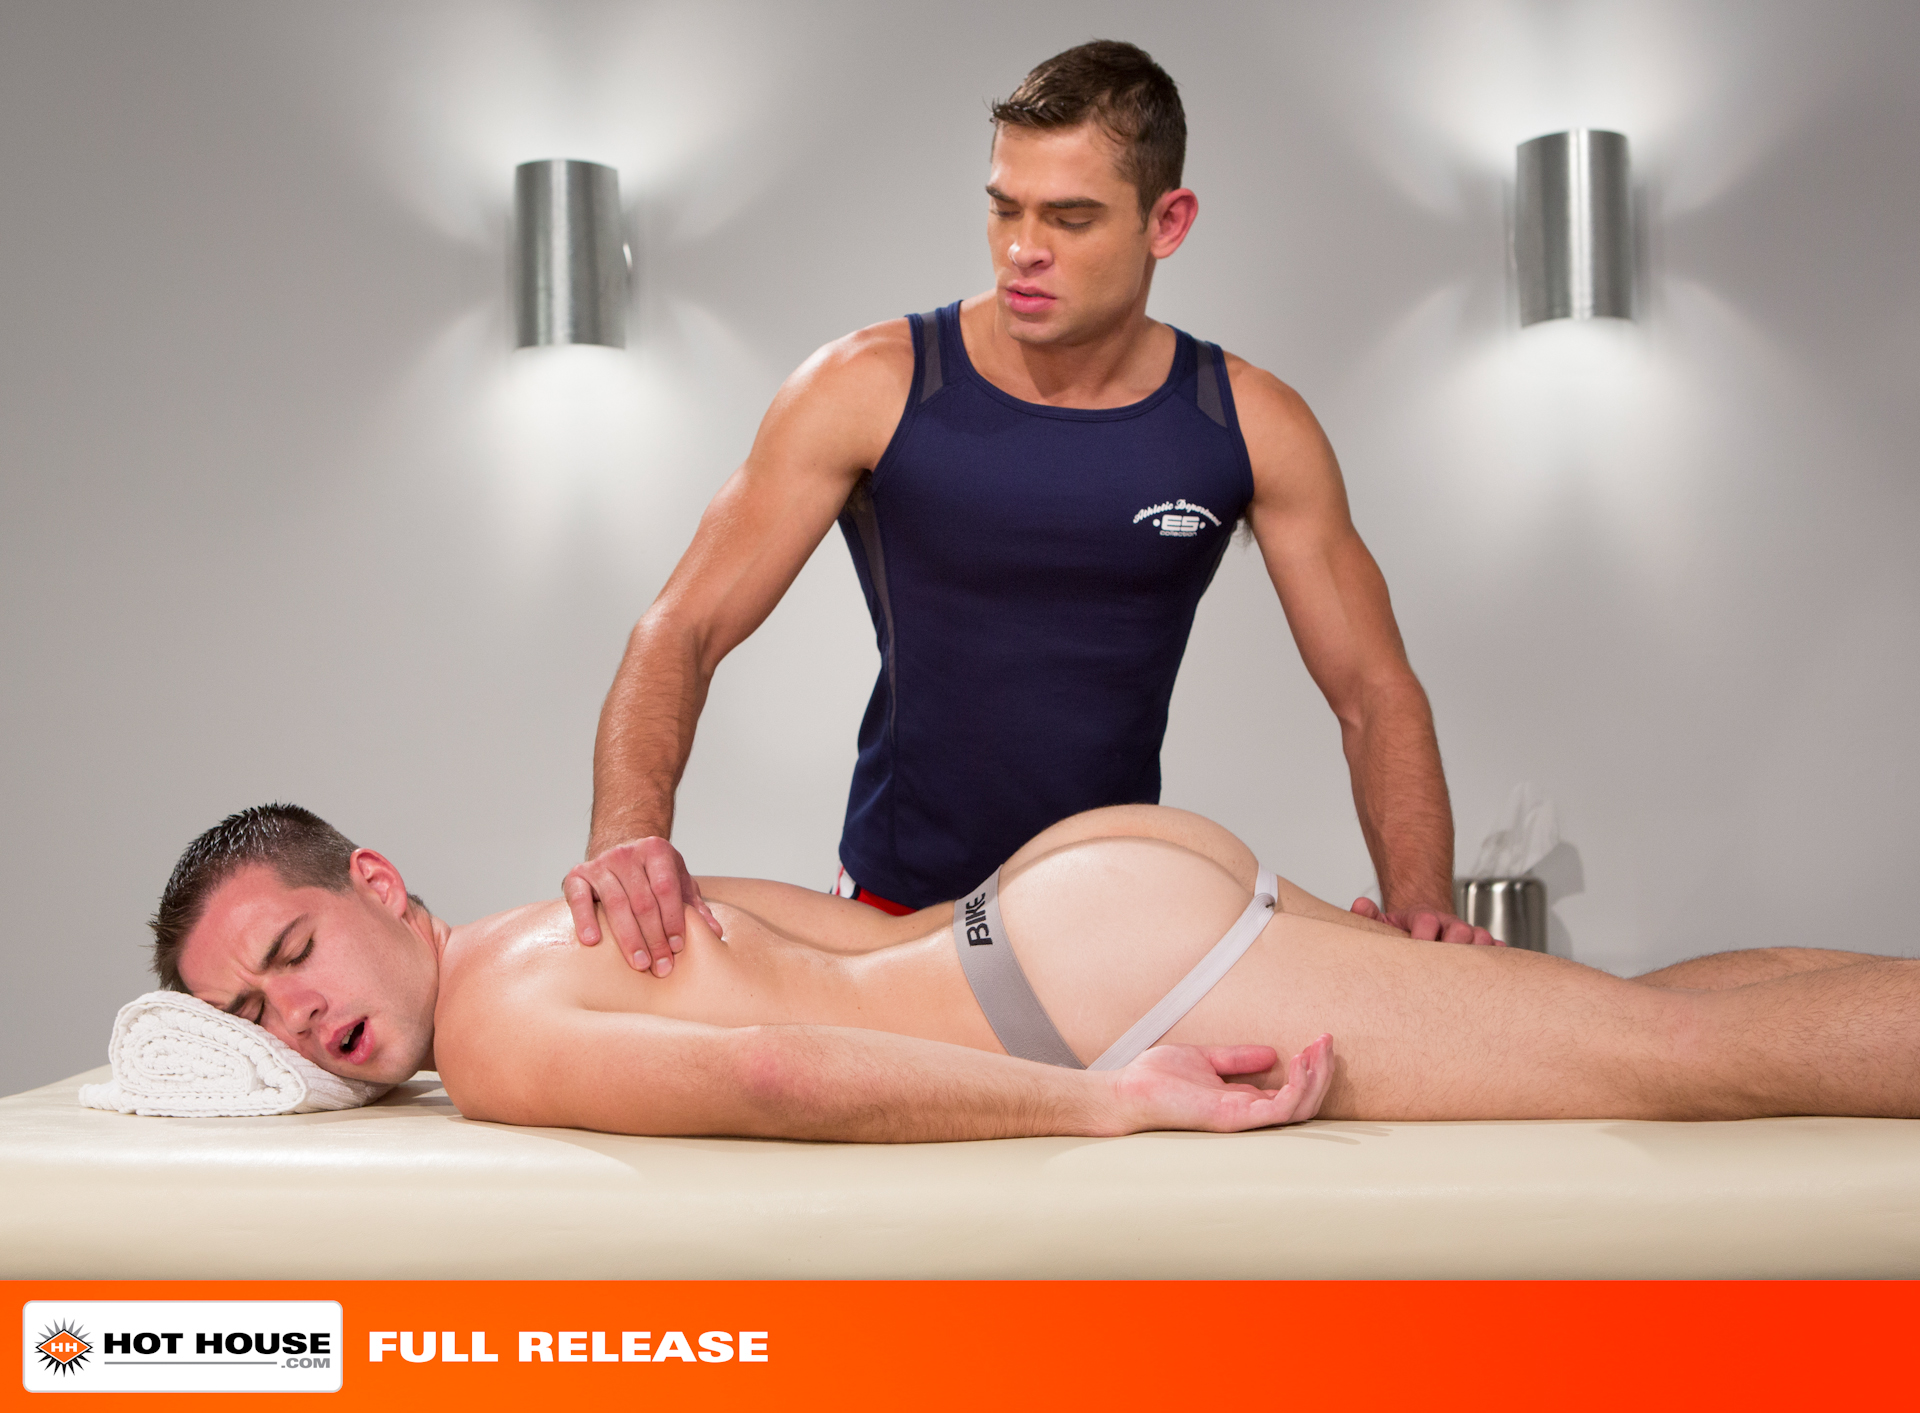 Hot House – Full Release (Scene 1)